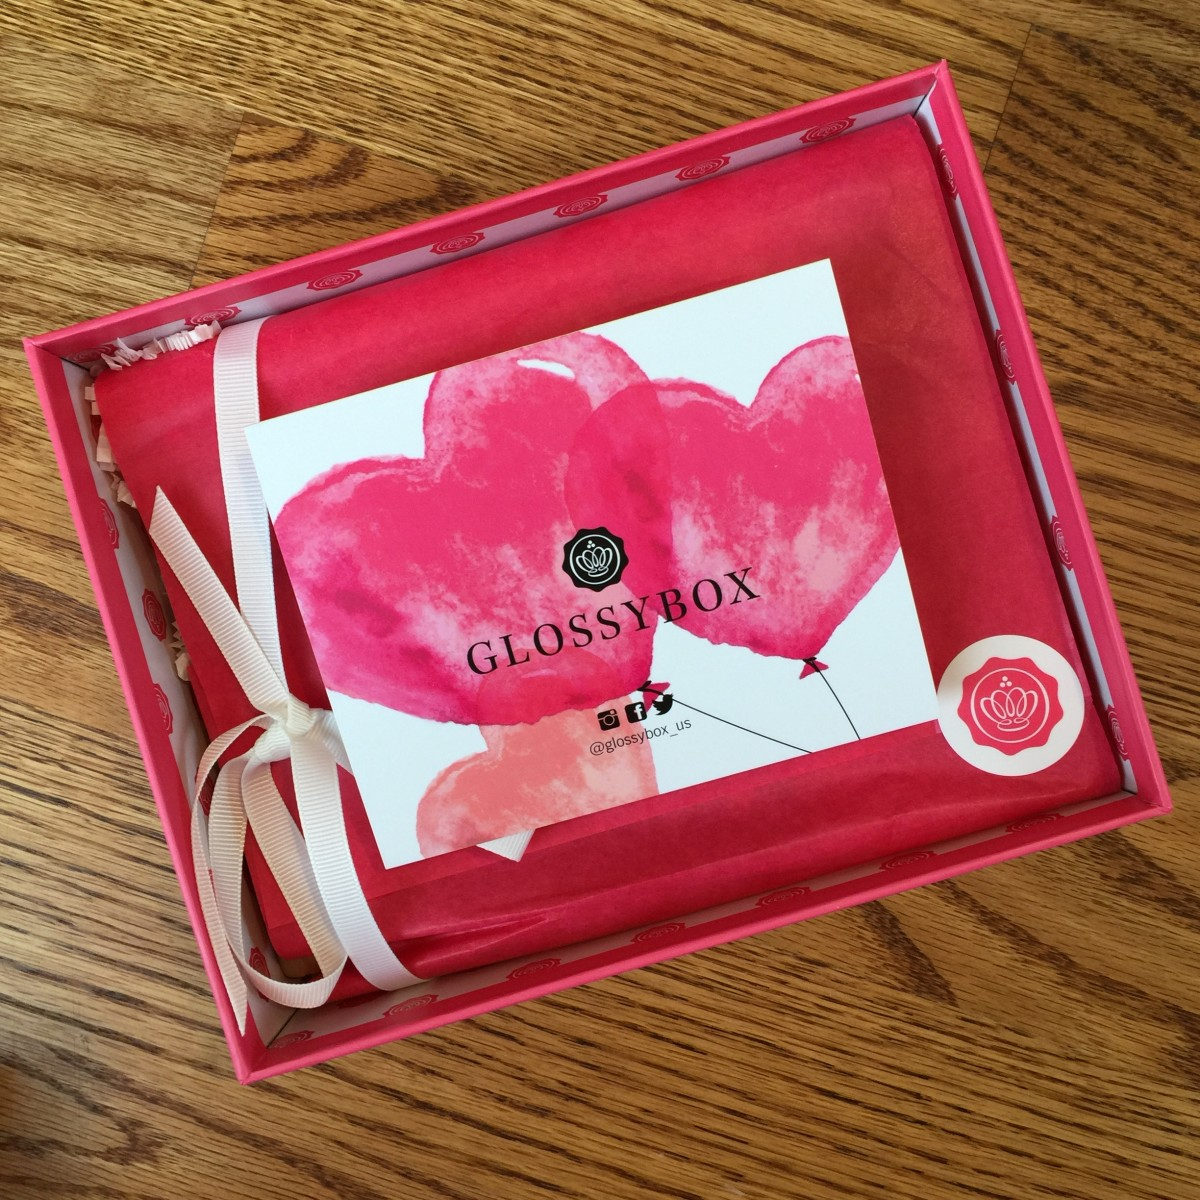 Glossybox beauty subscription